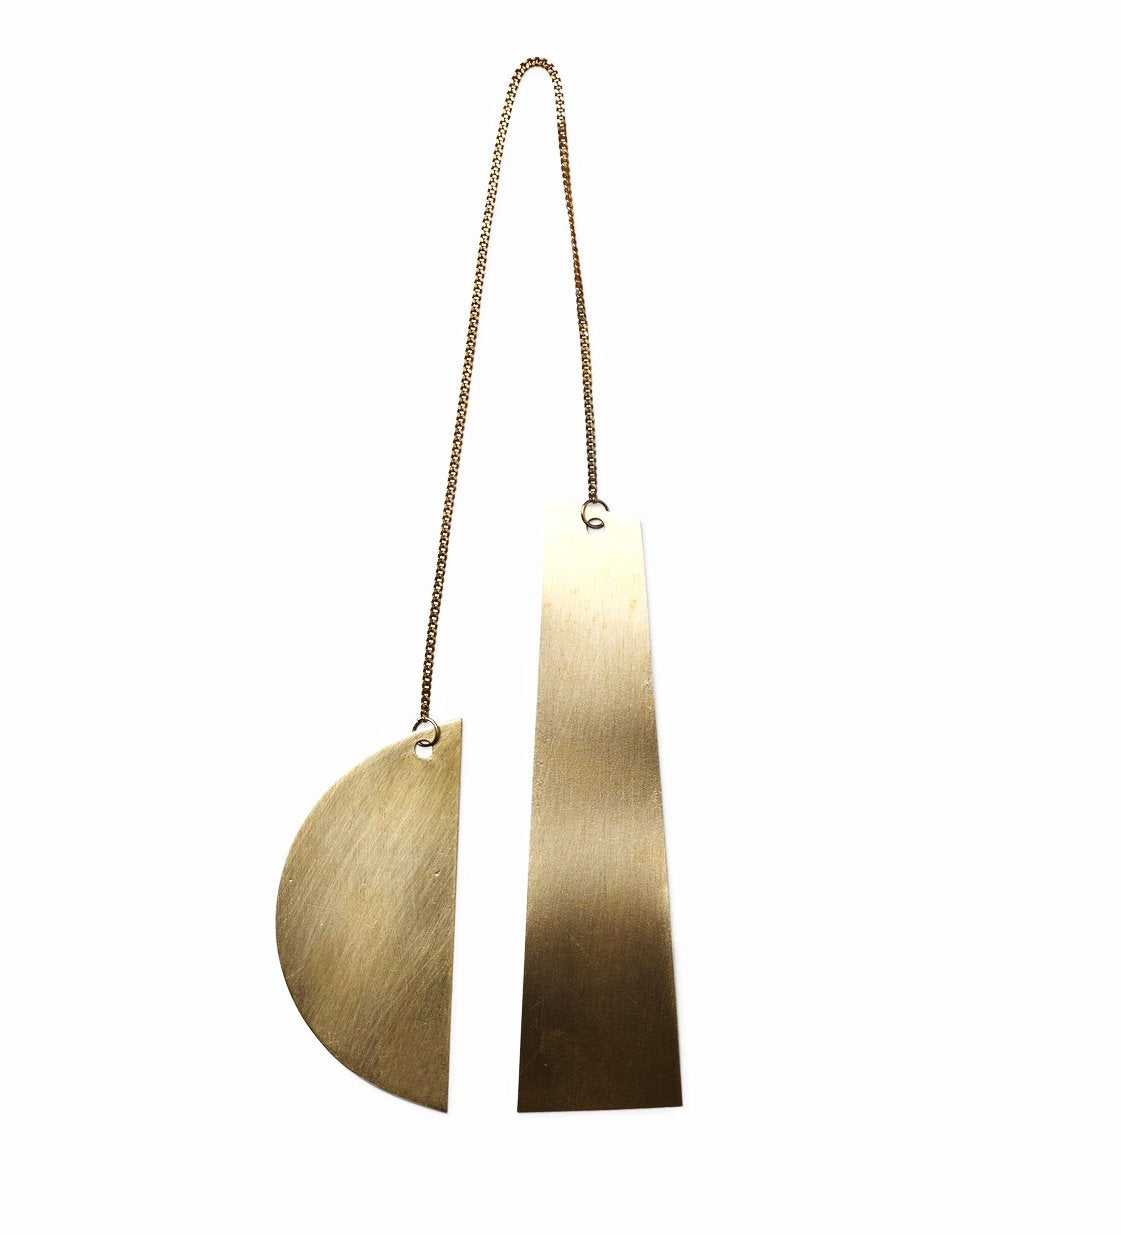 Ferm Living Twin Moon Brass Ornaments on DLK | designlifekids.com